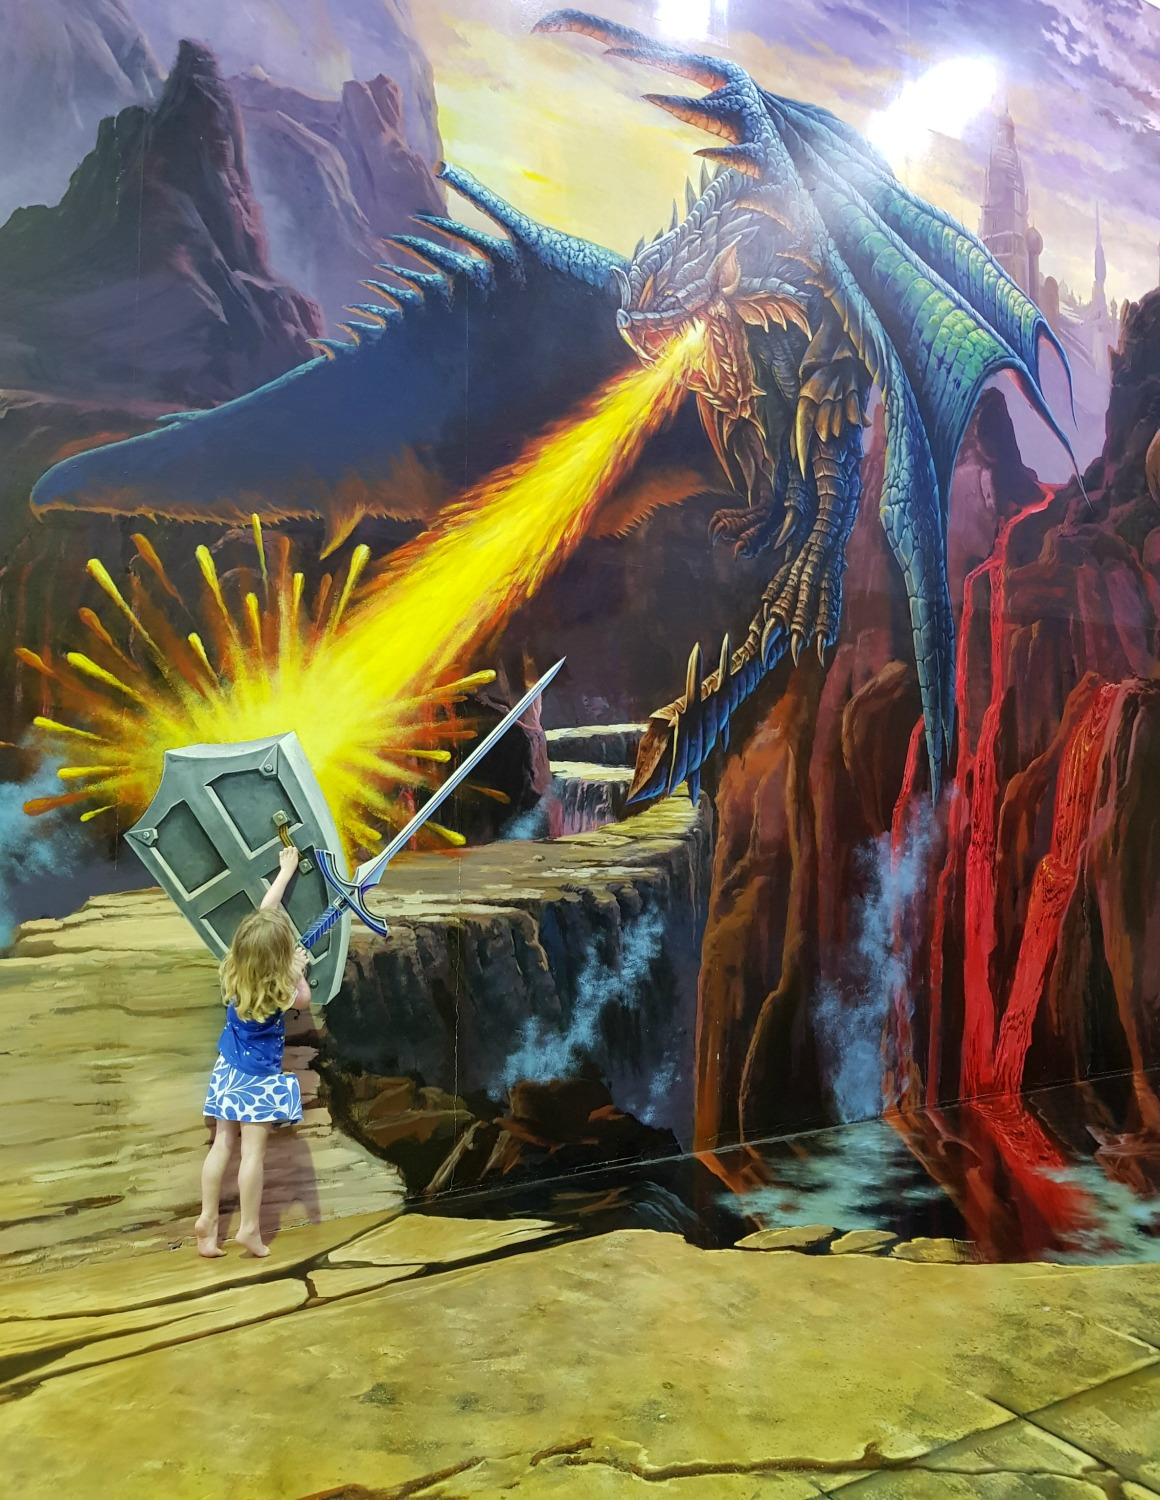 My daughter battling dragon fire at Langkawi Art in Paradise, one of Malaysia's 3D art museums